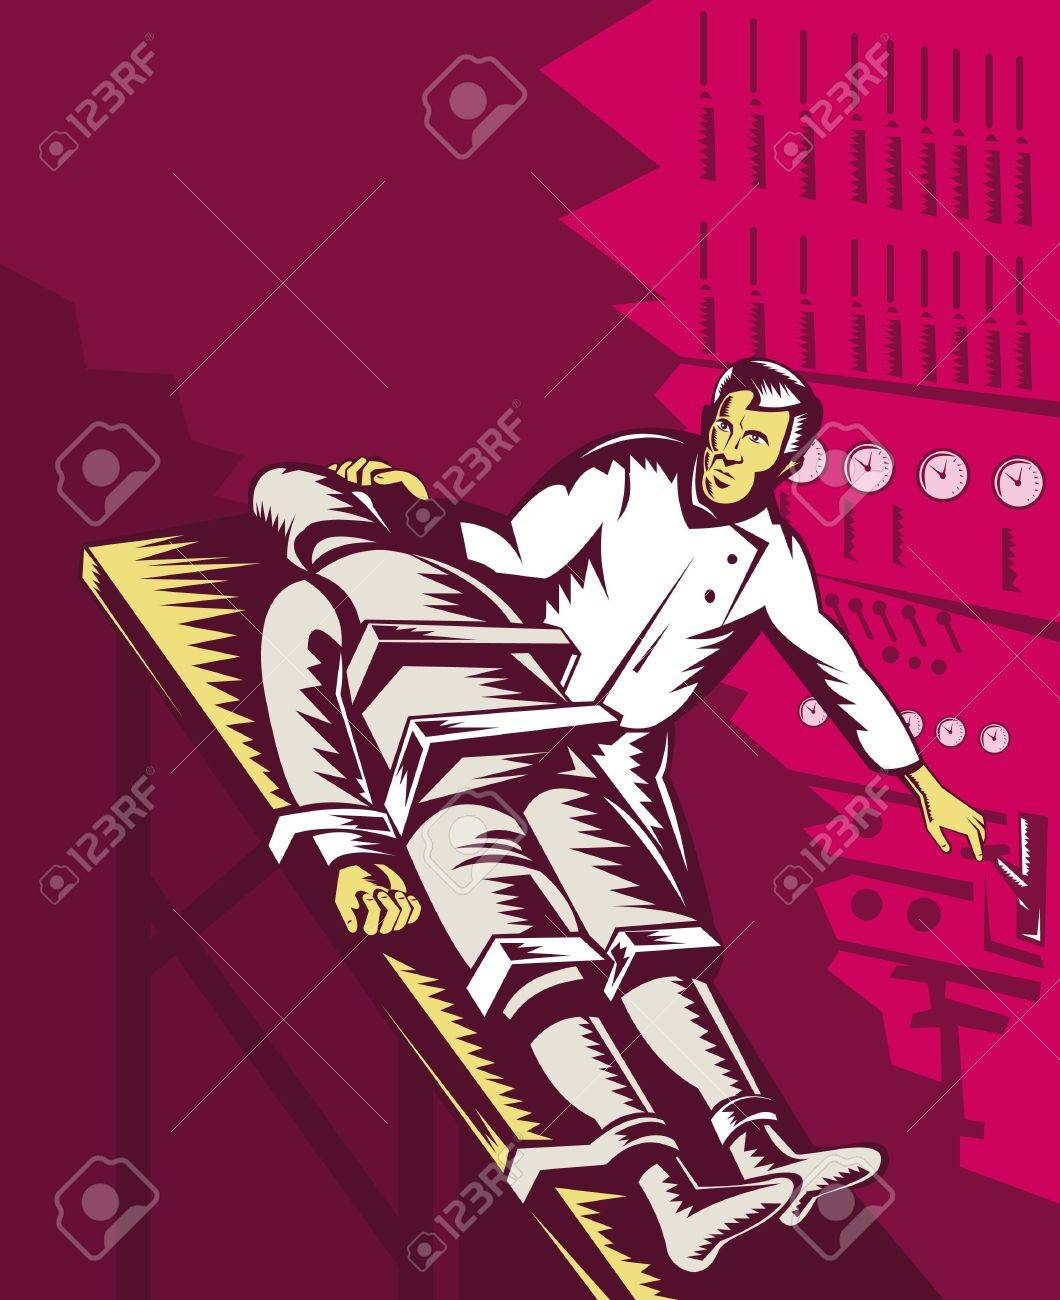 Dr Frankenstein about to turn power plank on Stock Photo - 7238269